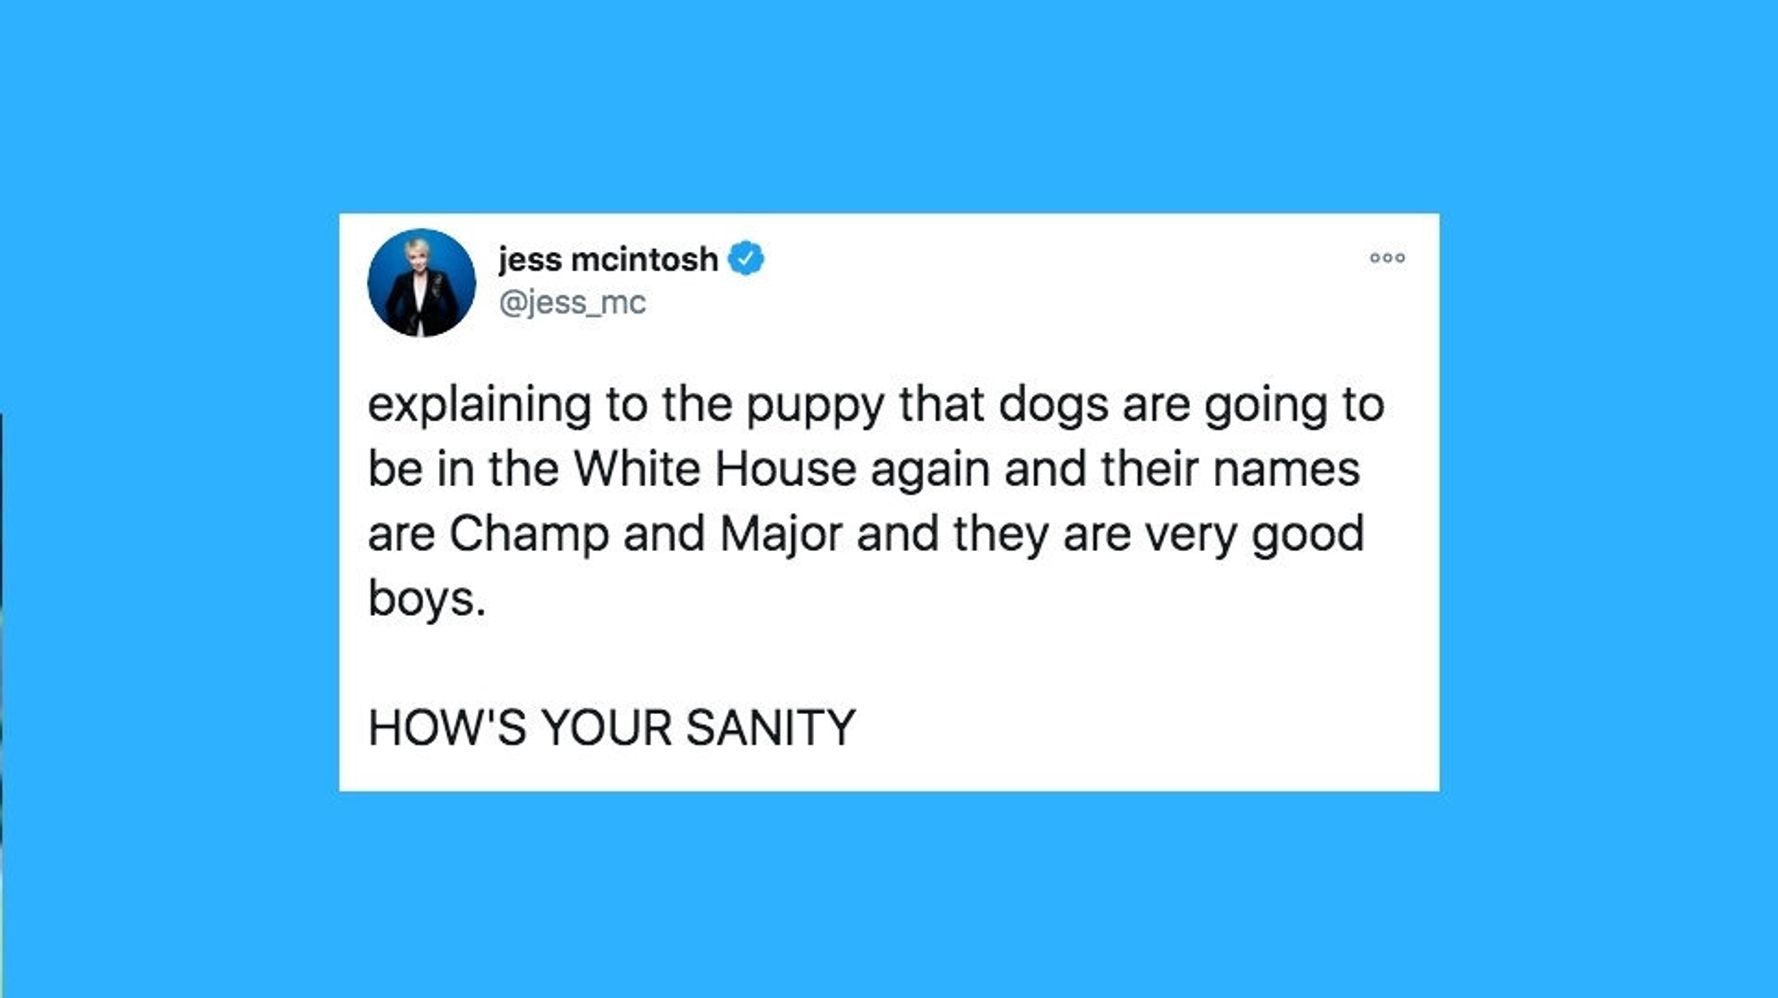 25 Of The Funniest Tweets About Cats And Dogs This Week (Oct. 31-Nov. 6)